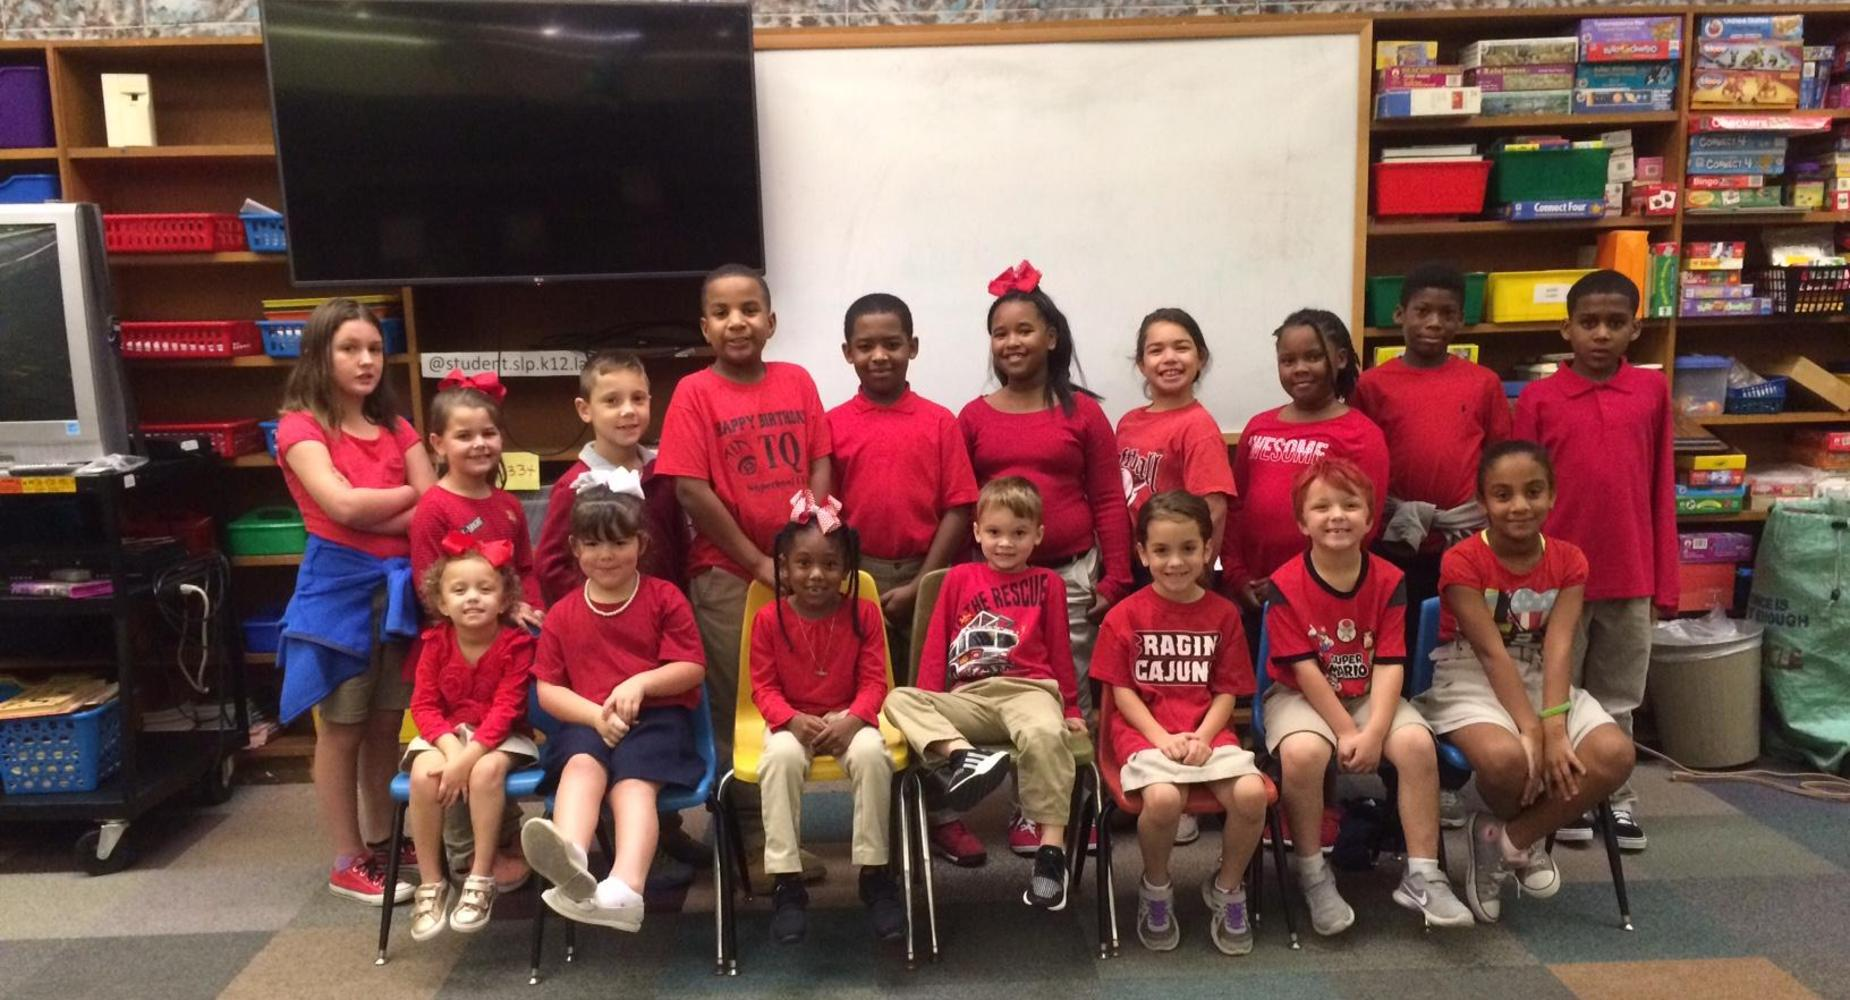 EAST ELEMENTARY CELEBRATES DRUG AWARENESS WEEK WITH RED DAY